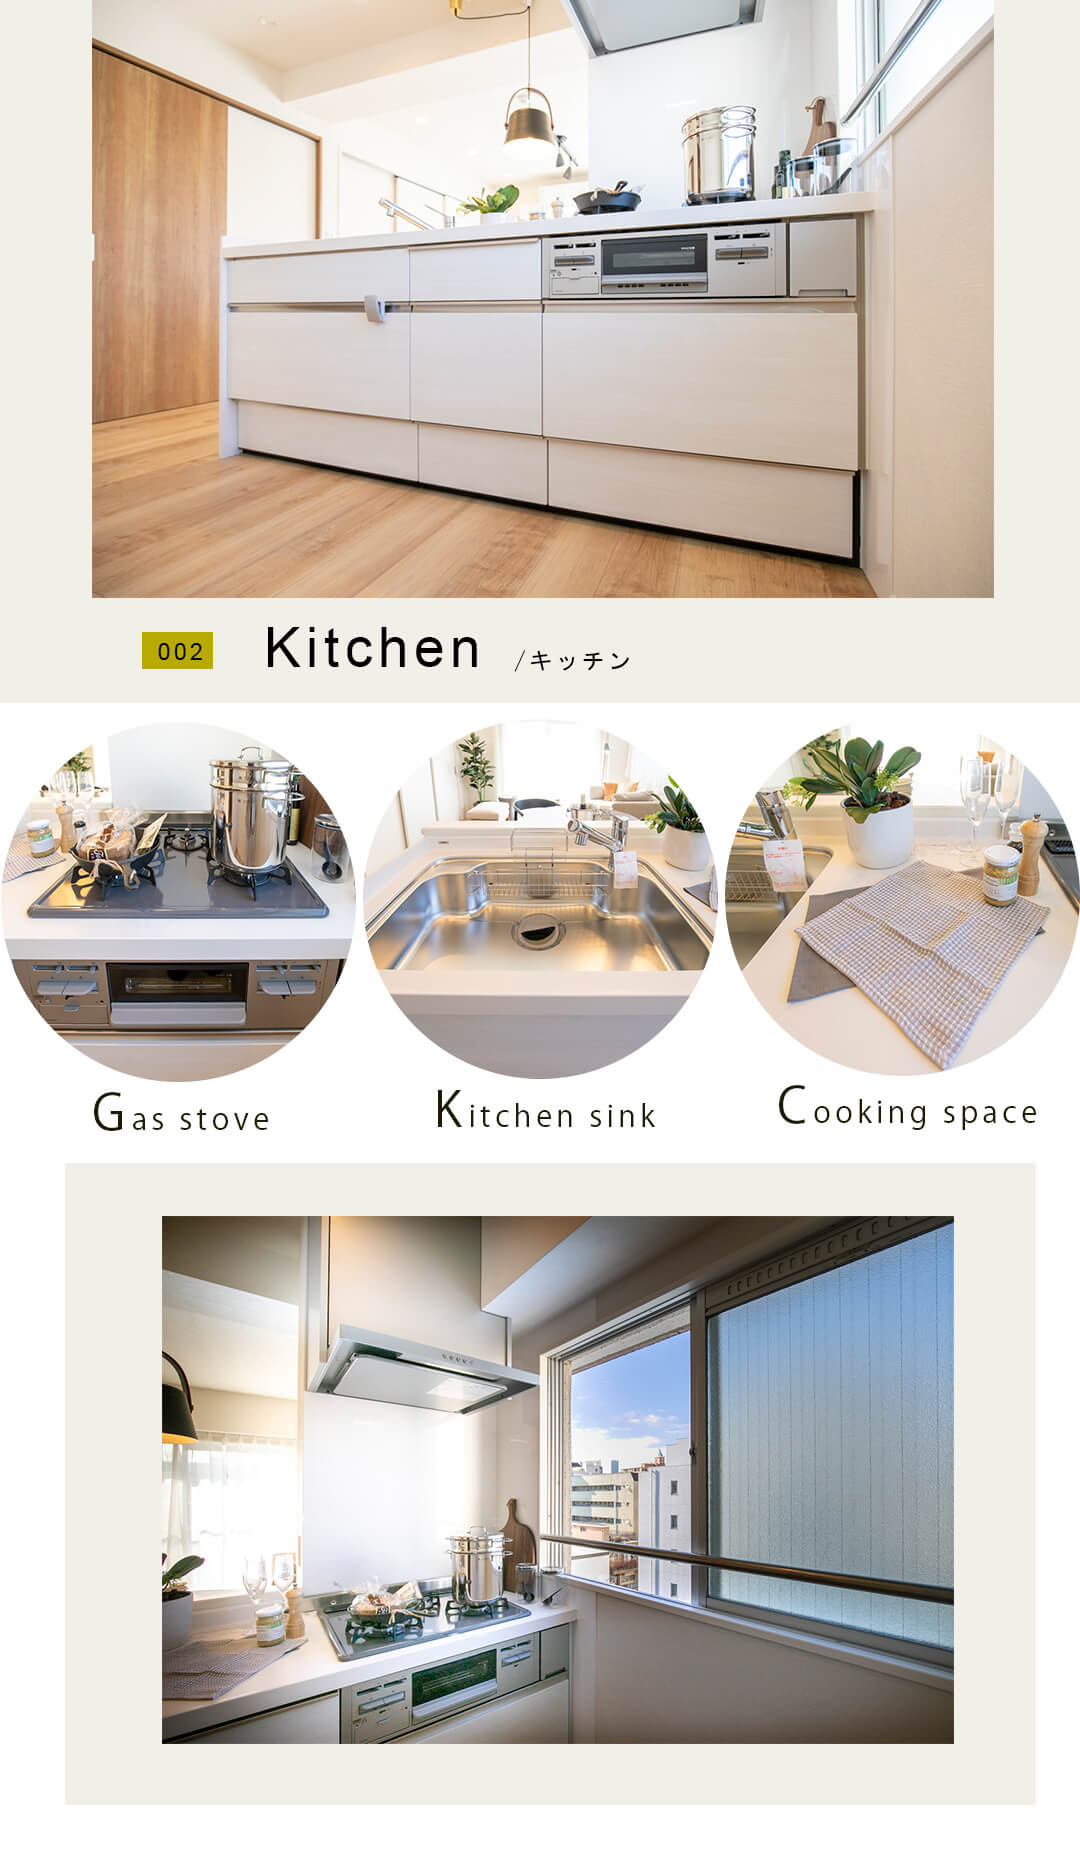 002,Kitchen,キッチン,GasStove,Kitchensink,Cookingspace